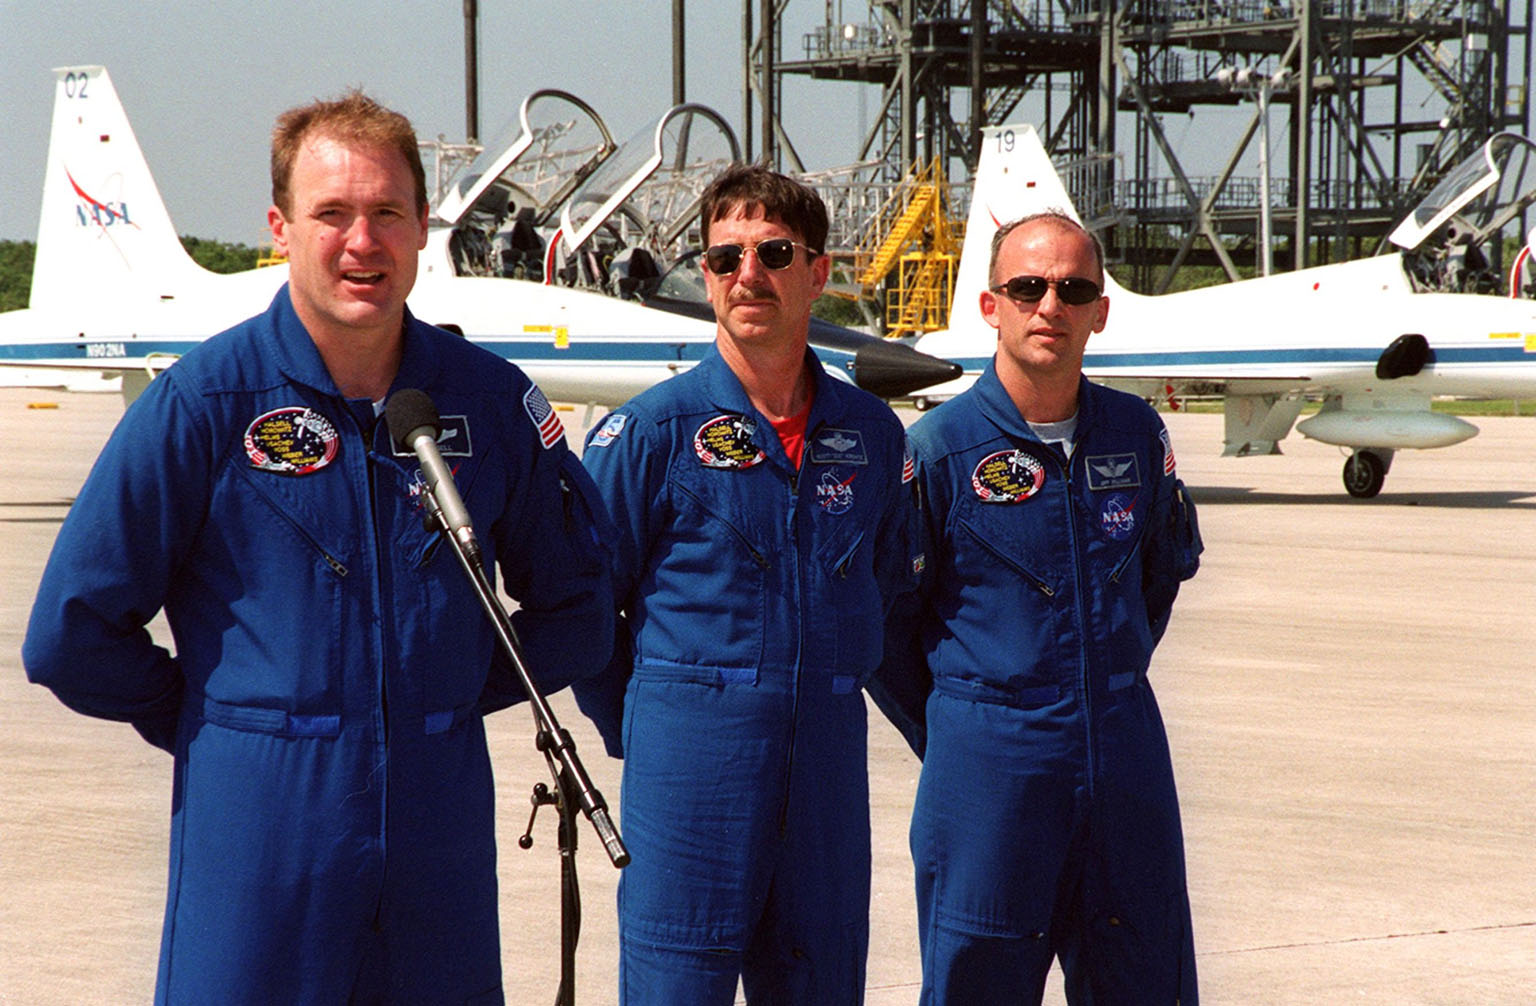 """After arriving at the Shuttle Landing Facility for their launch preparations, the STS-101 crew pauses to greet the media. At the microphone is Commander James Halsell. Next to him (left to right) are Pilot Scott """"Doc"""" Horowitz and Mission Specialist Jeffrey Williams. Other crew members not shown are Mission Specialists Mary Ellen Weber, James Voss, Susan Helms and Yury Usachev of Russia. The mission will take the crew to the International Space Station, delivering logistics and supplies, plus preparing the Station for the arrival of the Zvezda Service Module, expected to be launched by Russia in July 2000. Also, the crew will conduct one space walk to perform maintenance on the Space Station. This will be the third assembly flight for the Space Station. Launch is targeted for April 24 at about 4:15 p.m. EDT from Launch Pad 39A"""